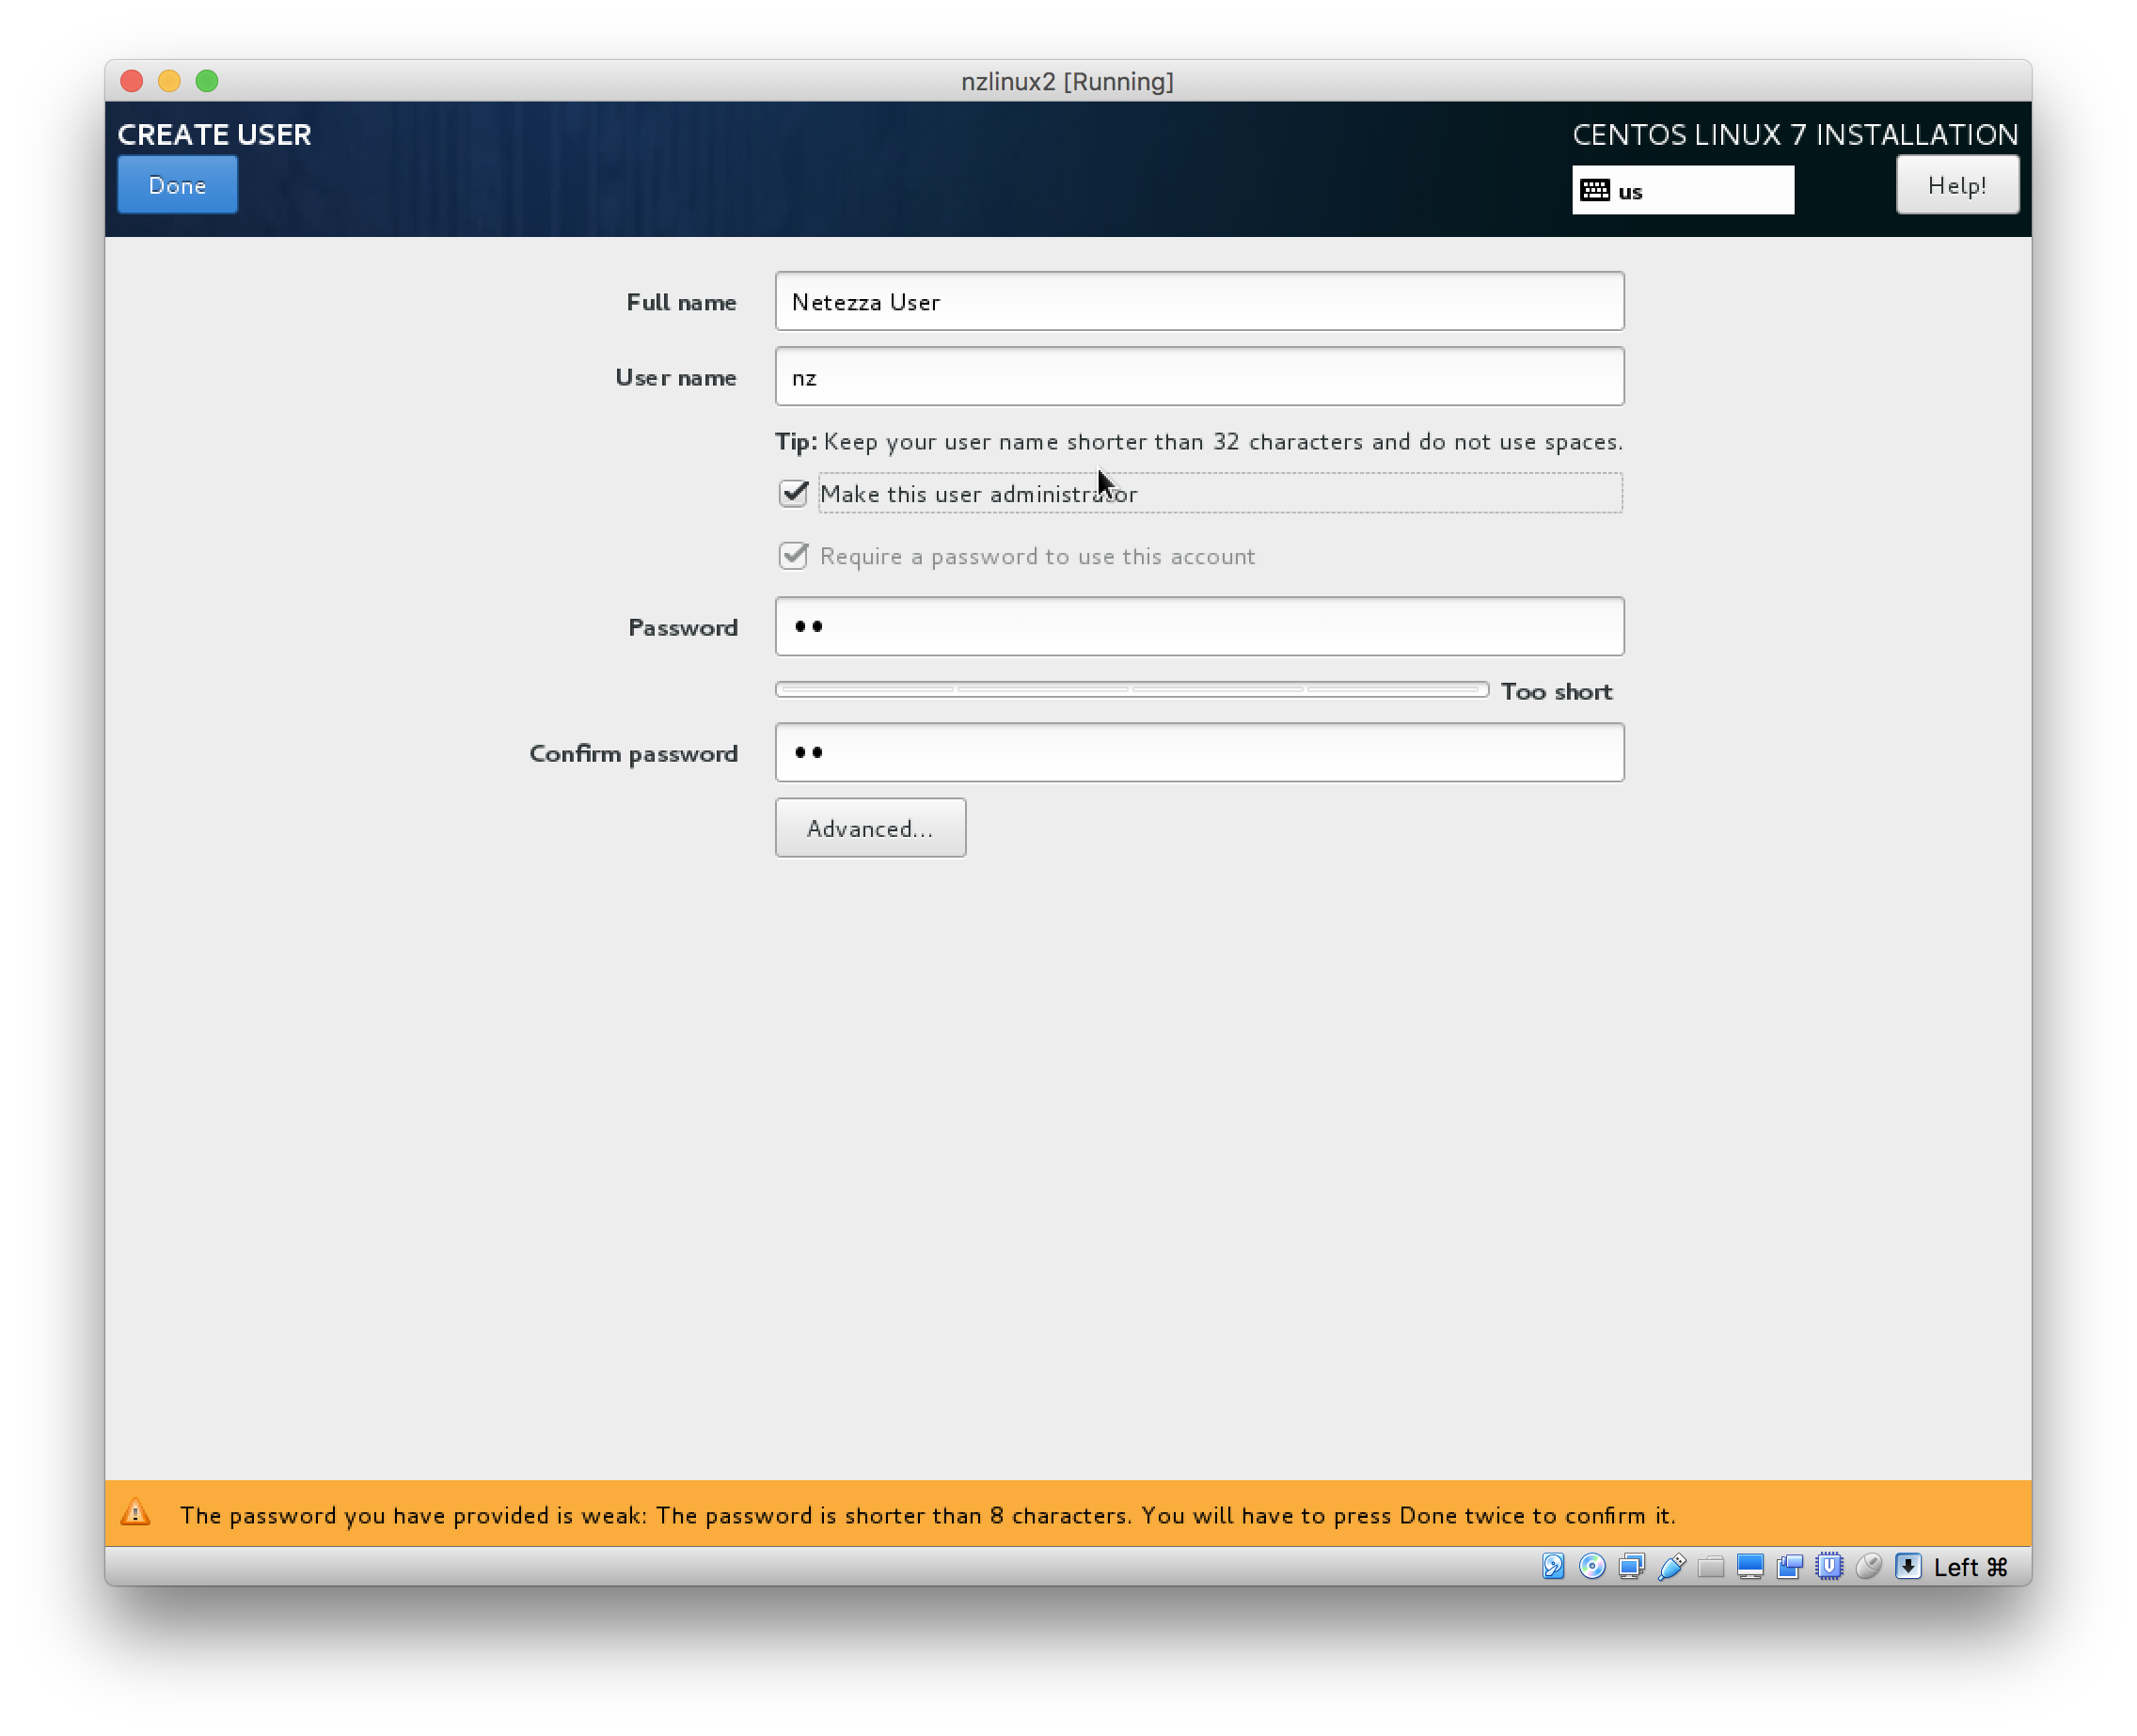 Create Linux VM running CentOS 7 3 minimal with pyodbc and